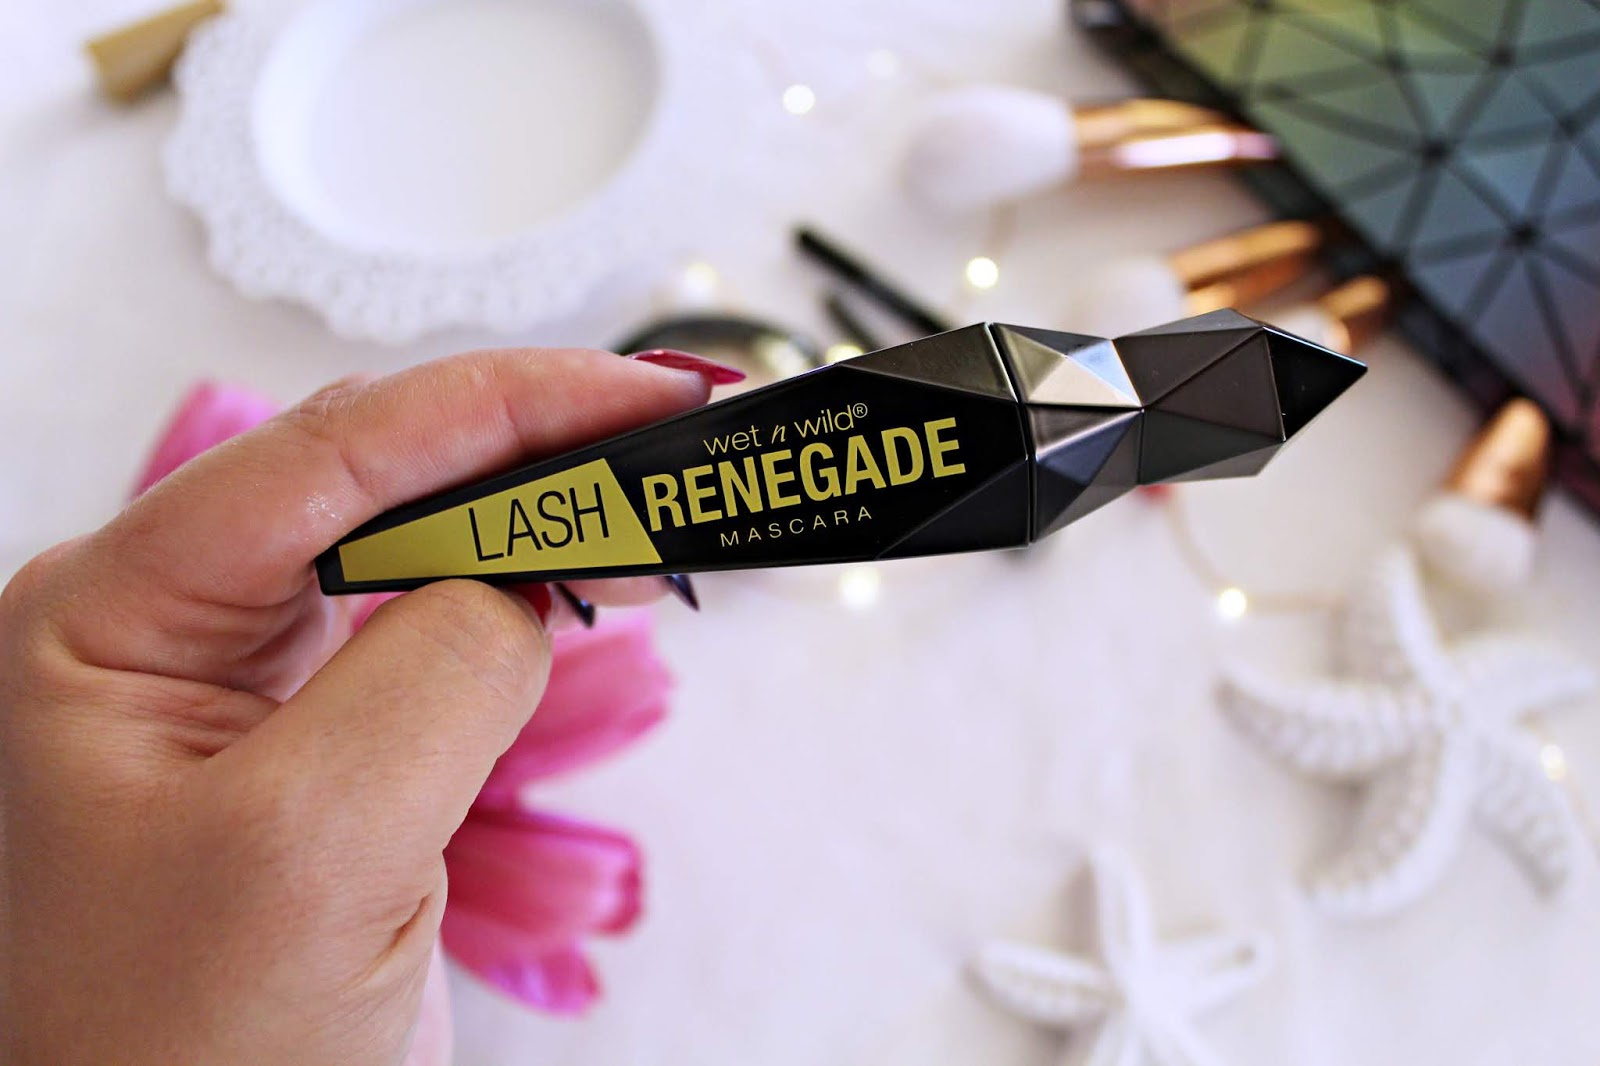 Wet n wild - Lash Renegad